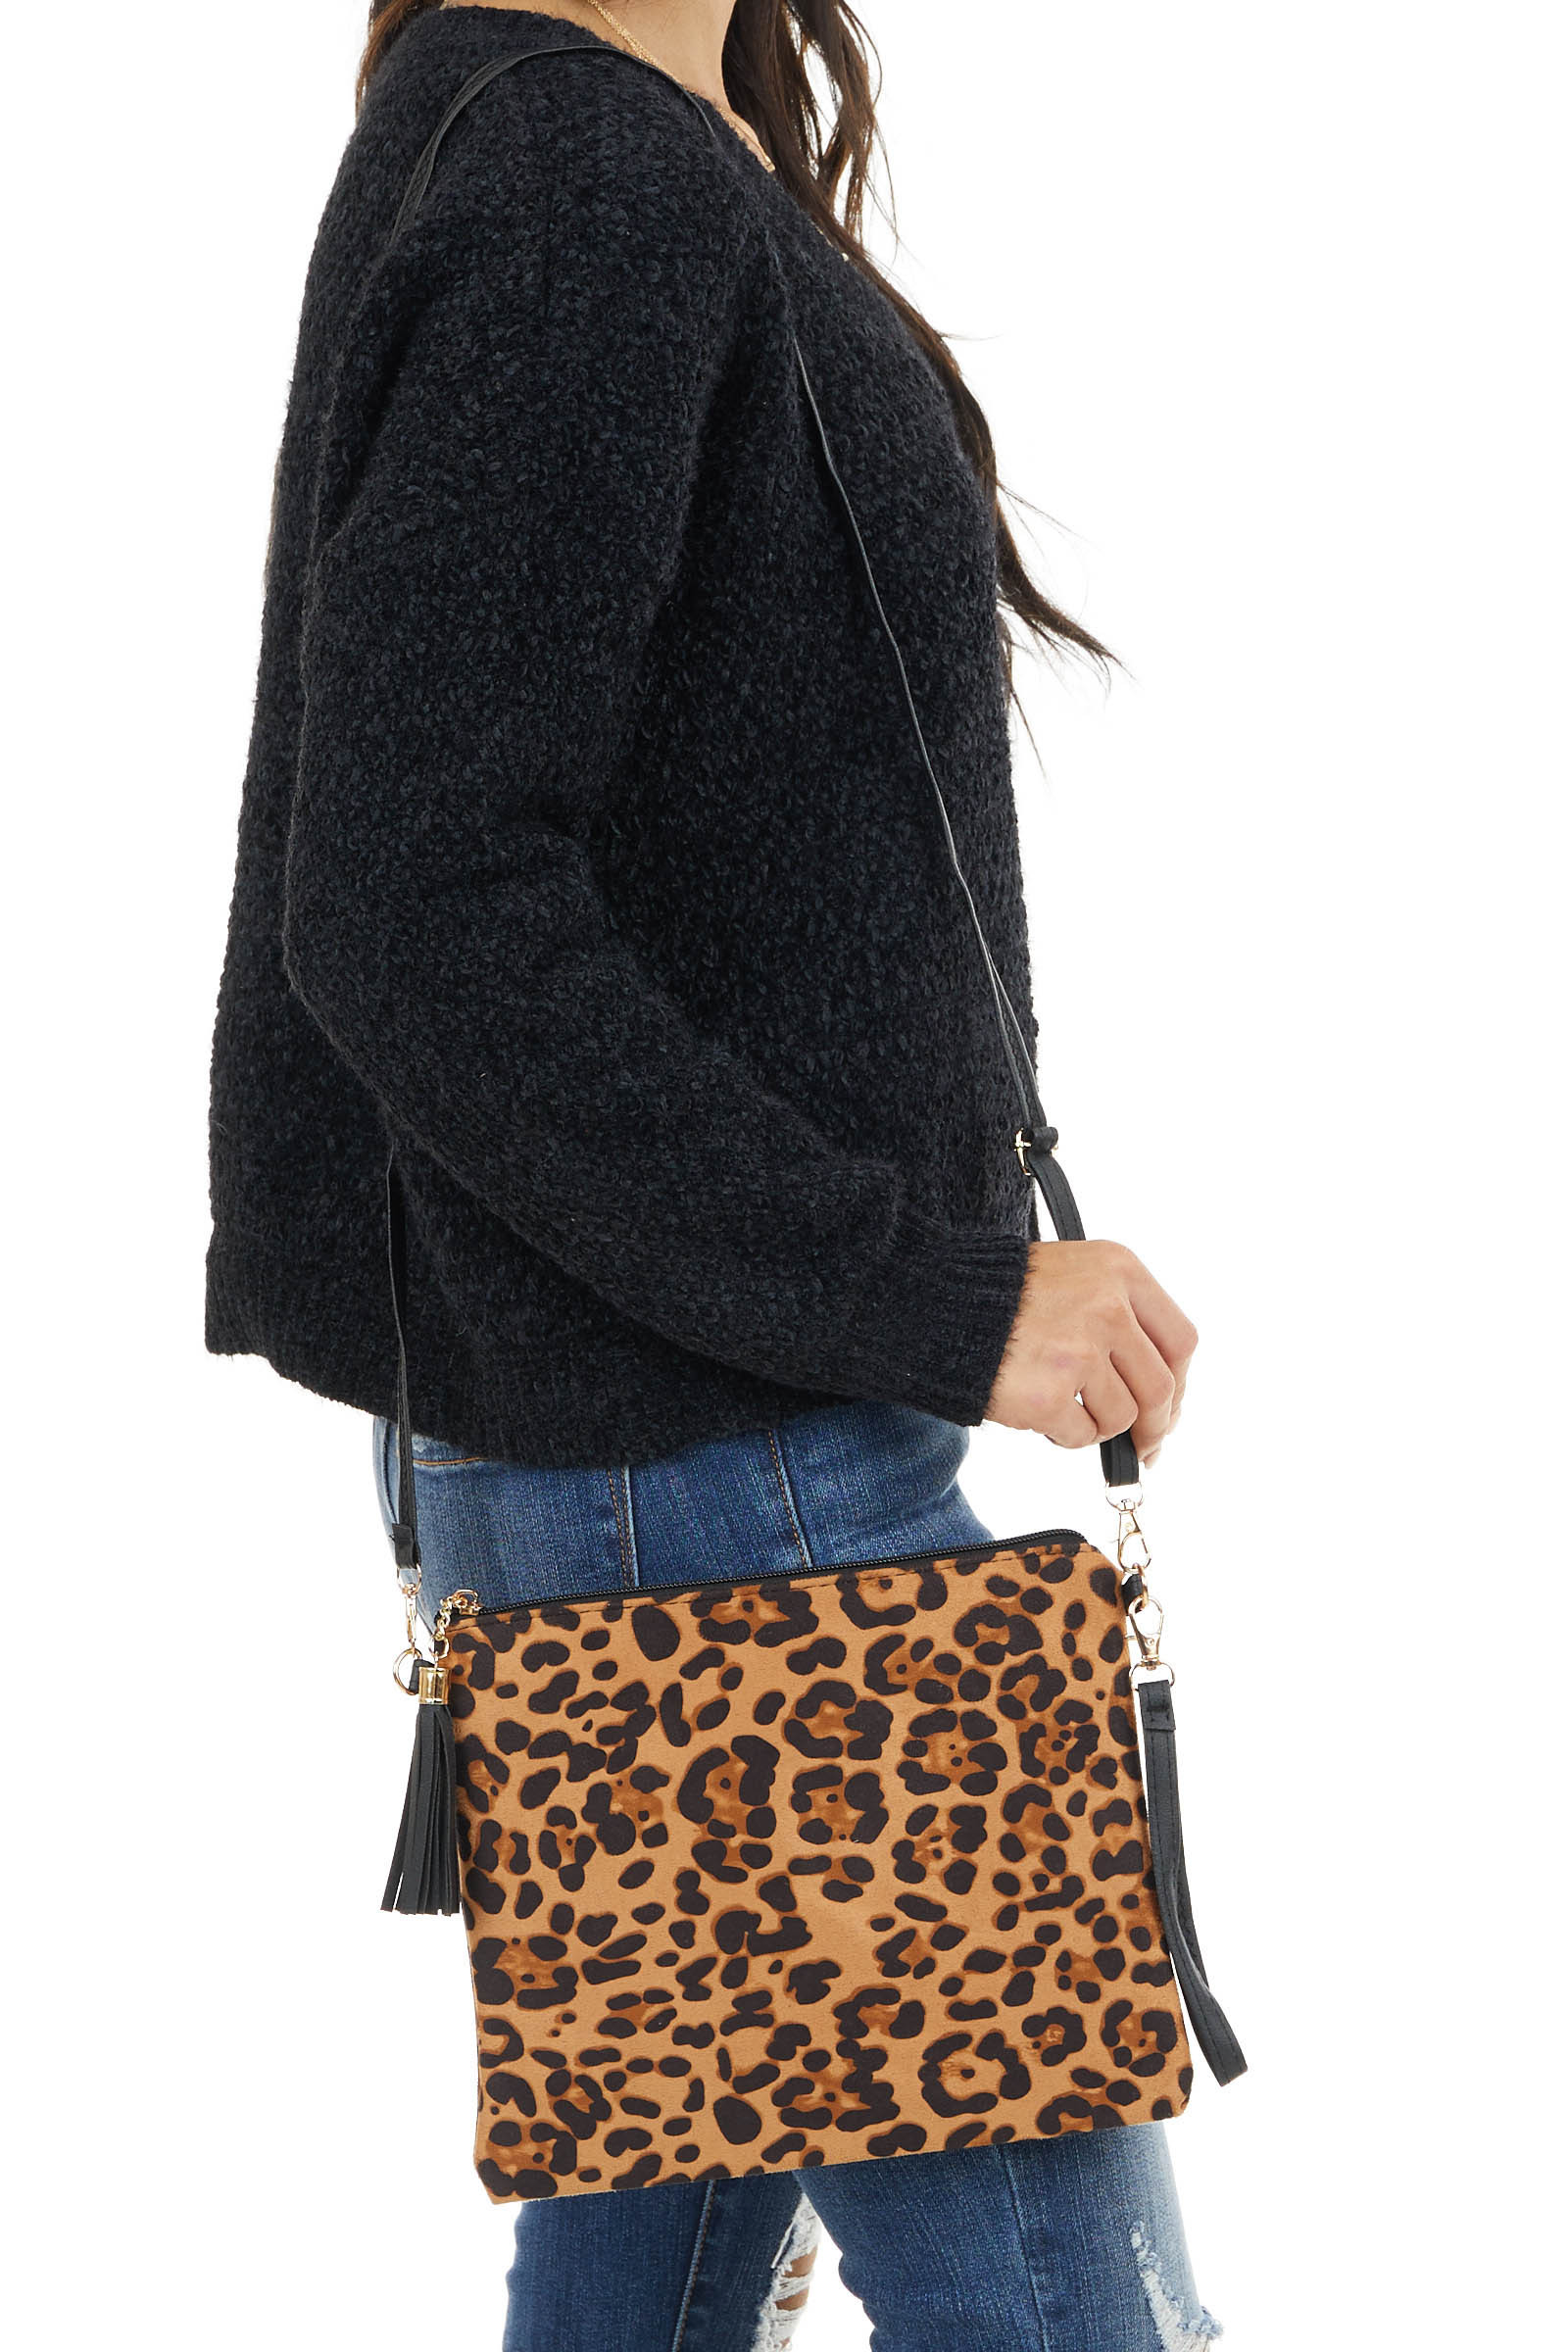 Caramel and Black Leopard Print Clutch with Detachable Strap